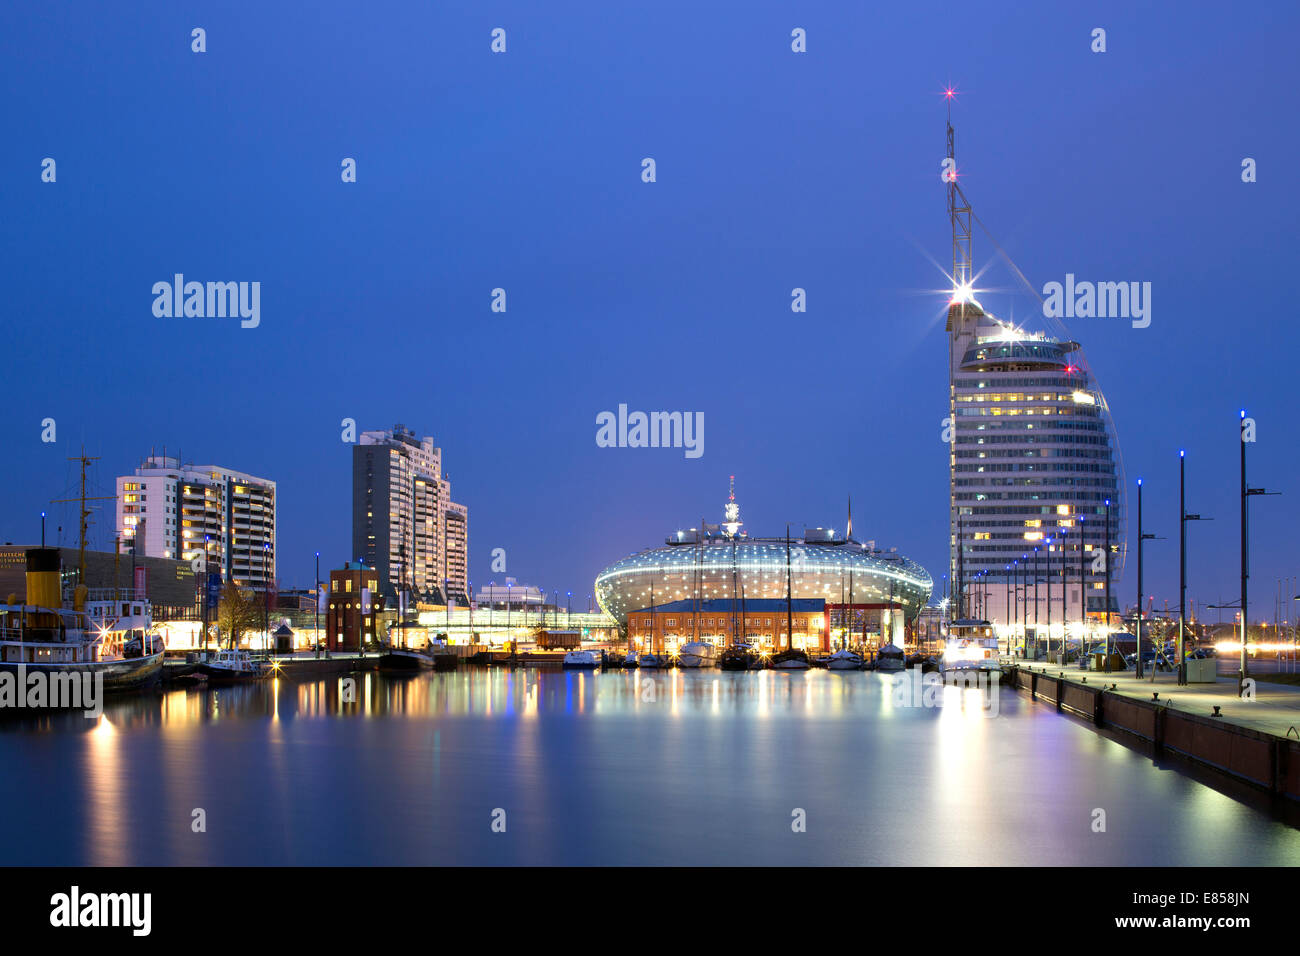 Mediterraneo shopping centre, Atlantic Hotel Sail City, Klimahaus Bremerhaven, Columbus Center, Havenwelten, Neuer - Stock Image